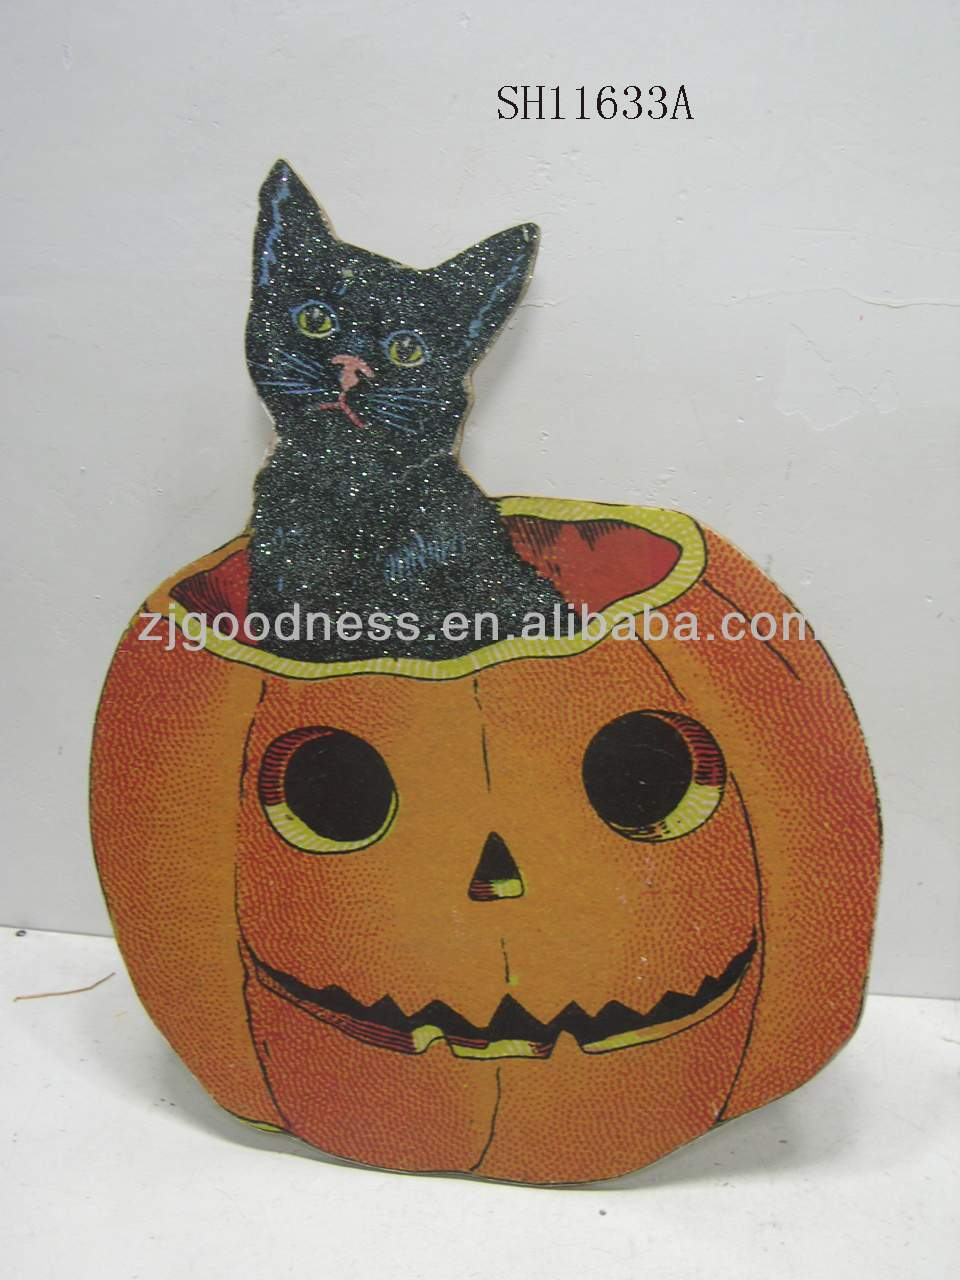 HOT SALE 23-1/2''H Halloween Decoration Cat&Pumpkin